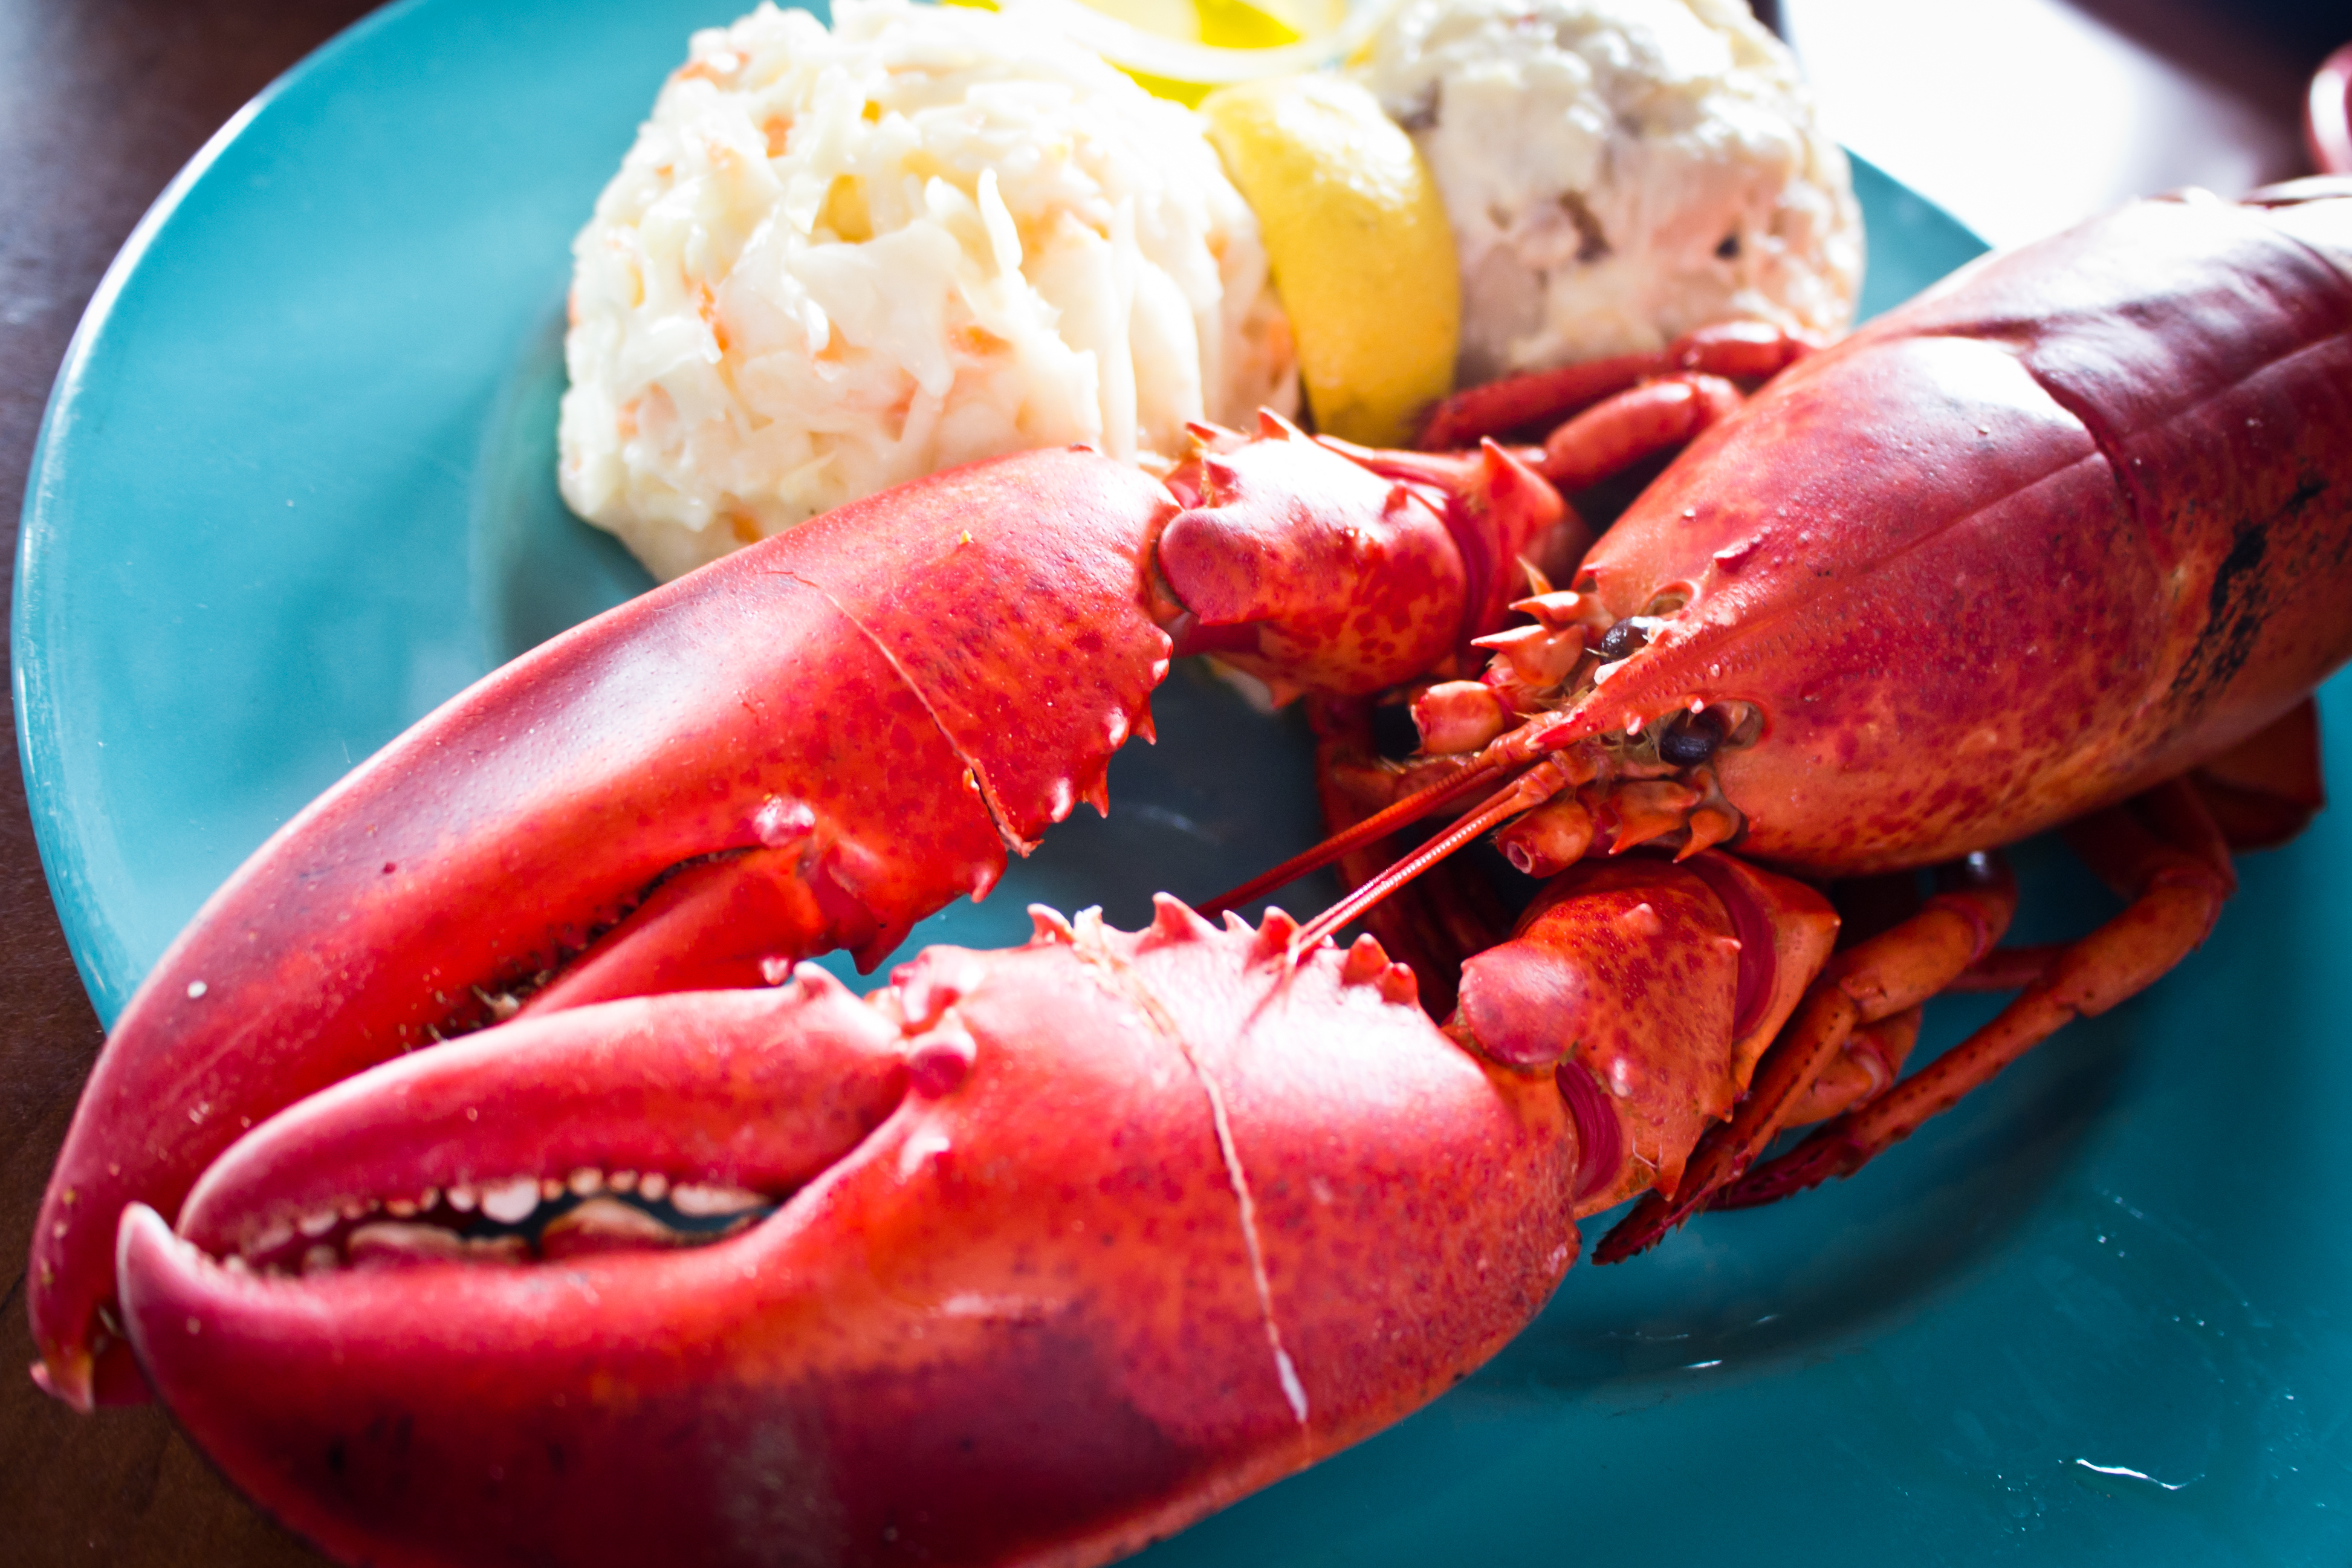 File:Lobster Dinner (6013079655).jpg - Wikimedia Commons